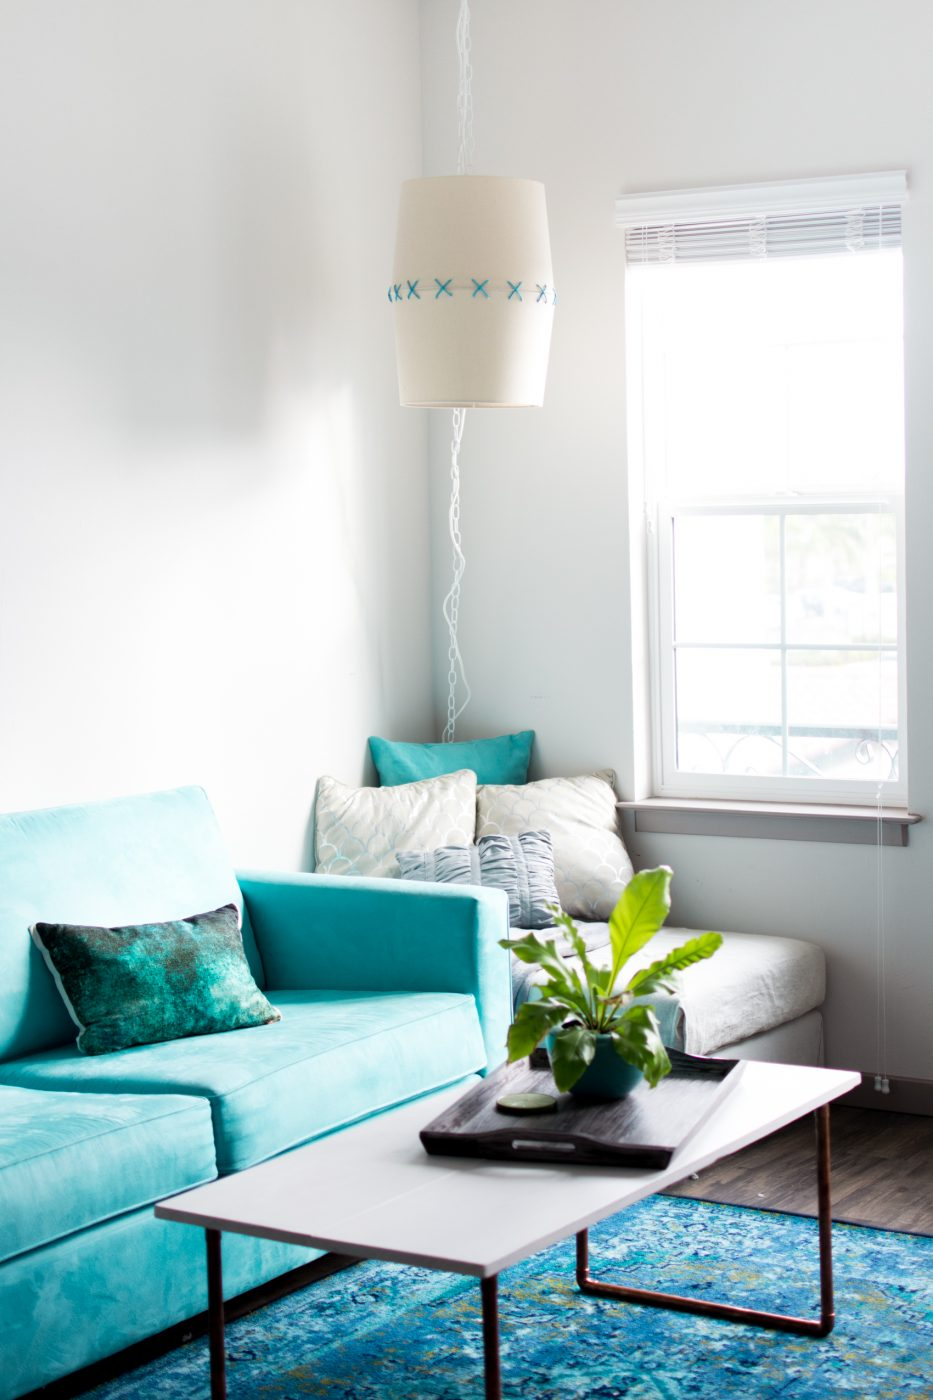 DIY Hanging Lampshade Light by Jenny Bess at Sweet Teal